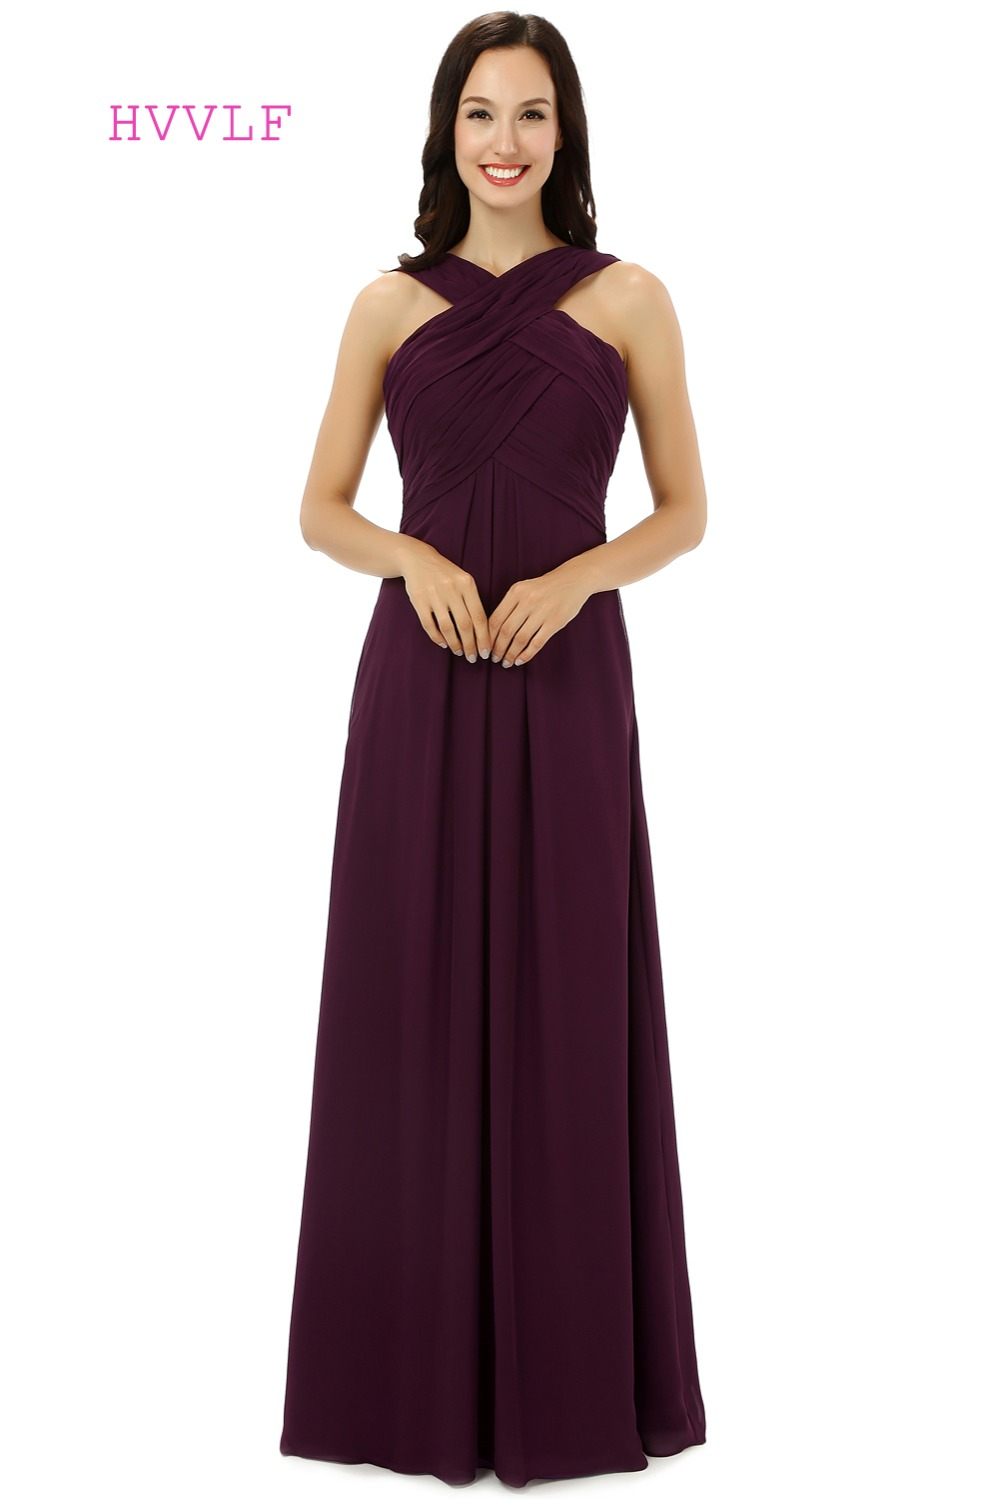 Purple 2019 Cheap   Bridesmaid     Dresses   Under 50 A-line Halter Floor Length Chiffon Pleated Long Wedding Party   Dresses